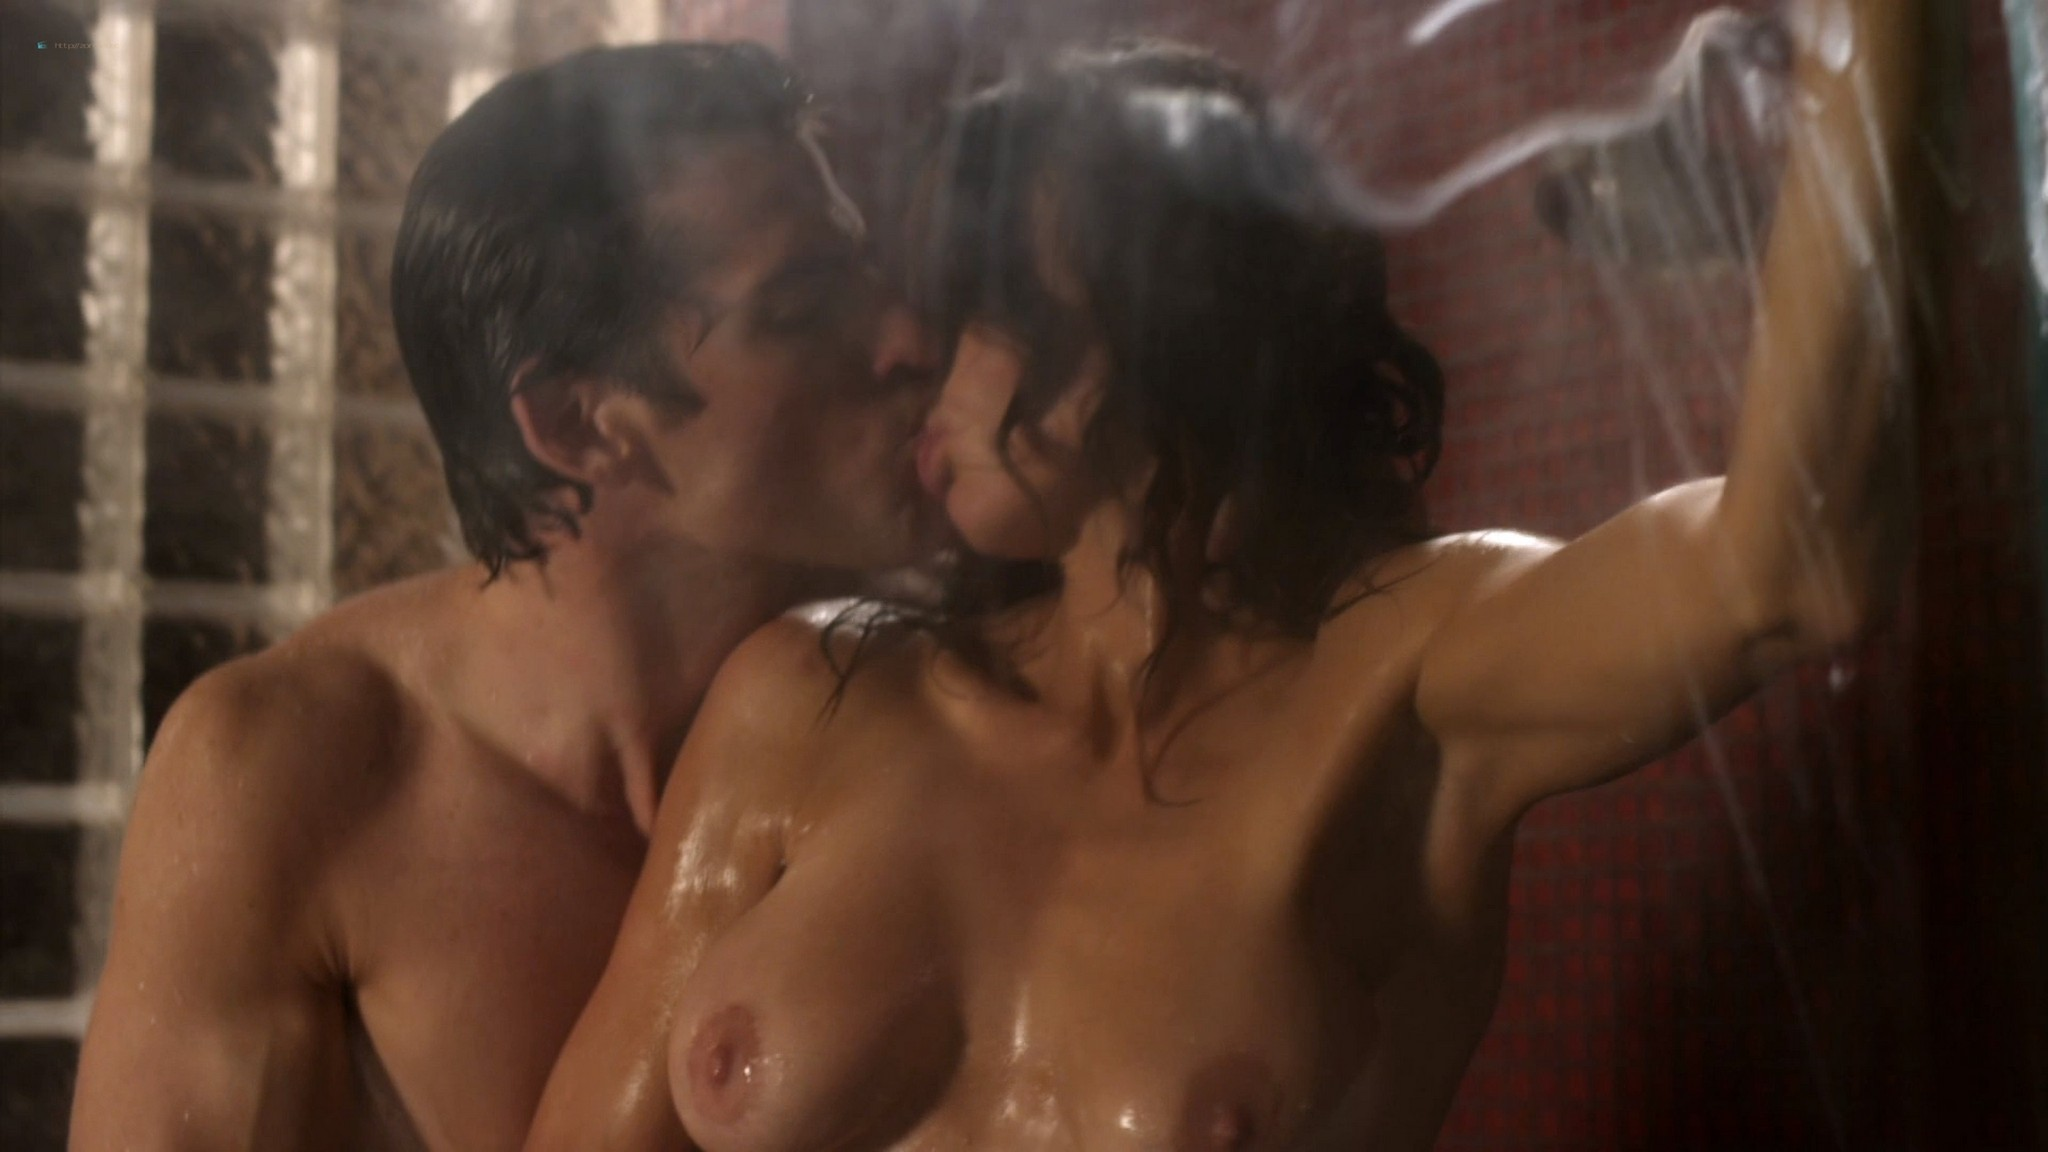 Ana Alexander nude sex in shower and threesome with Jayden Cole - Chemistry (2011) s1e2 HD 1080p (2)